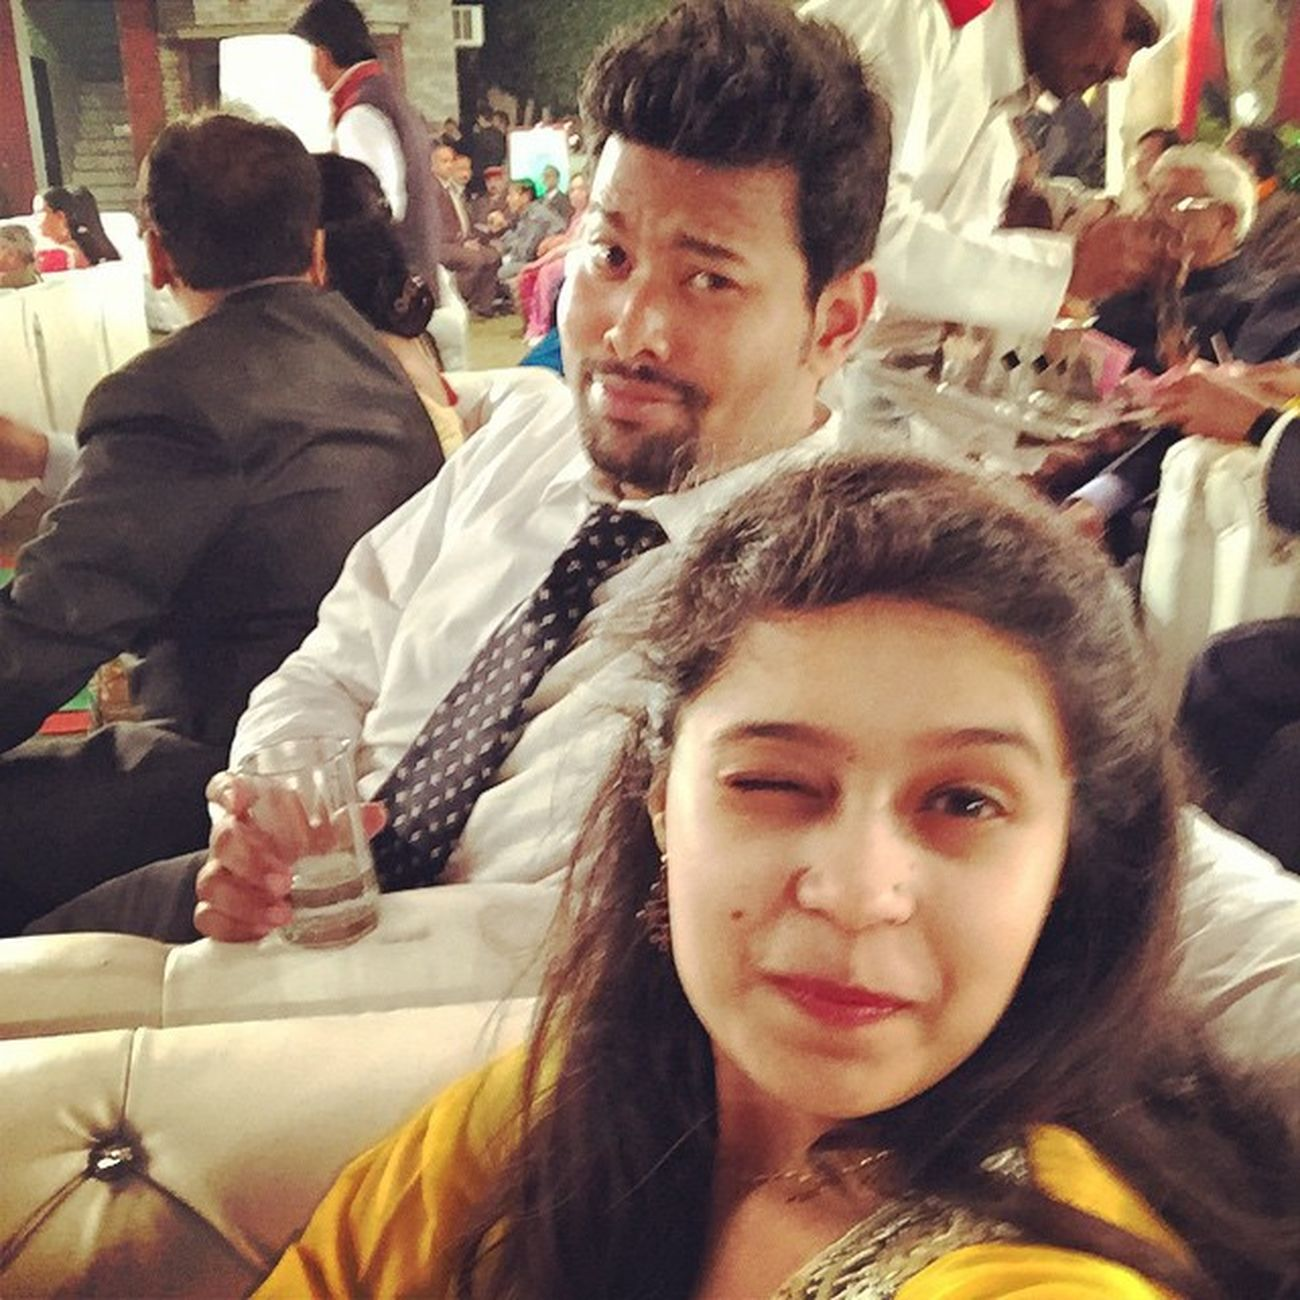 Because normal faces are too mainstream 😛 CousinsWedding Weirdfaces Toomuchdancing